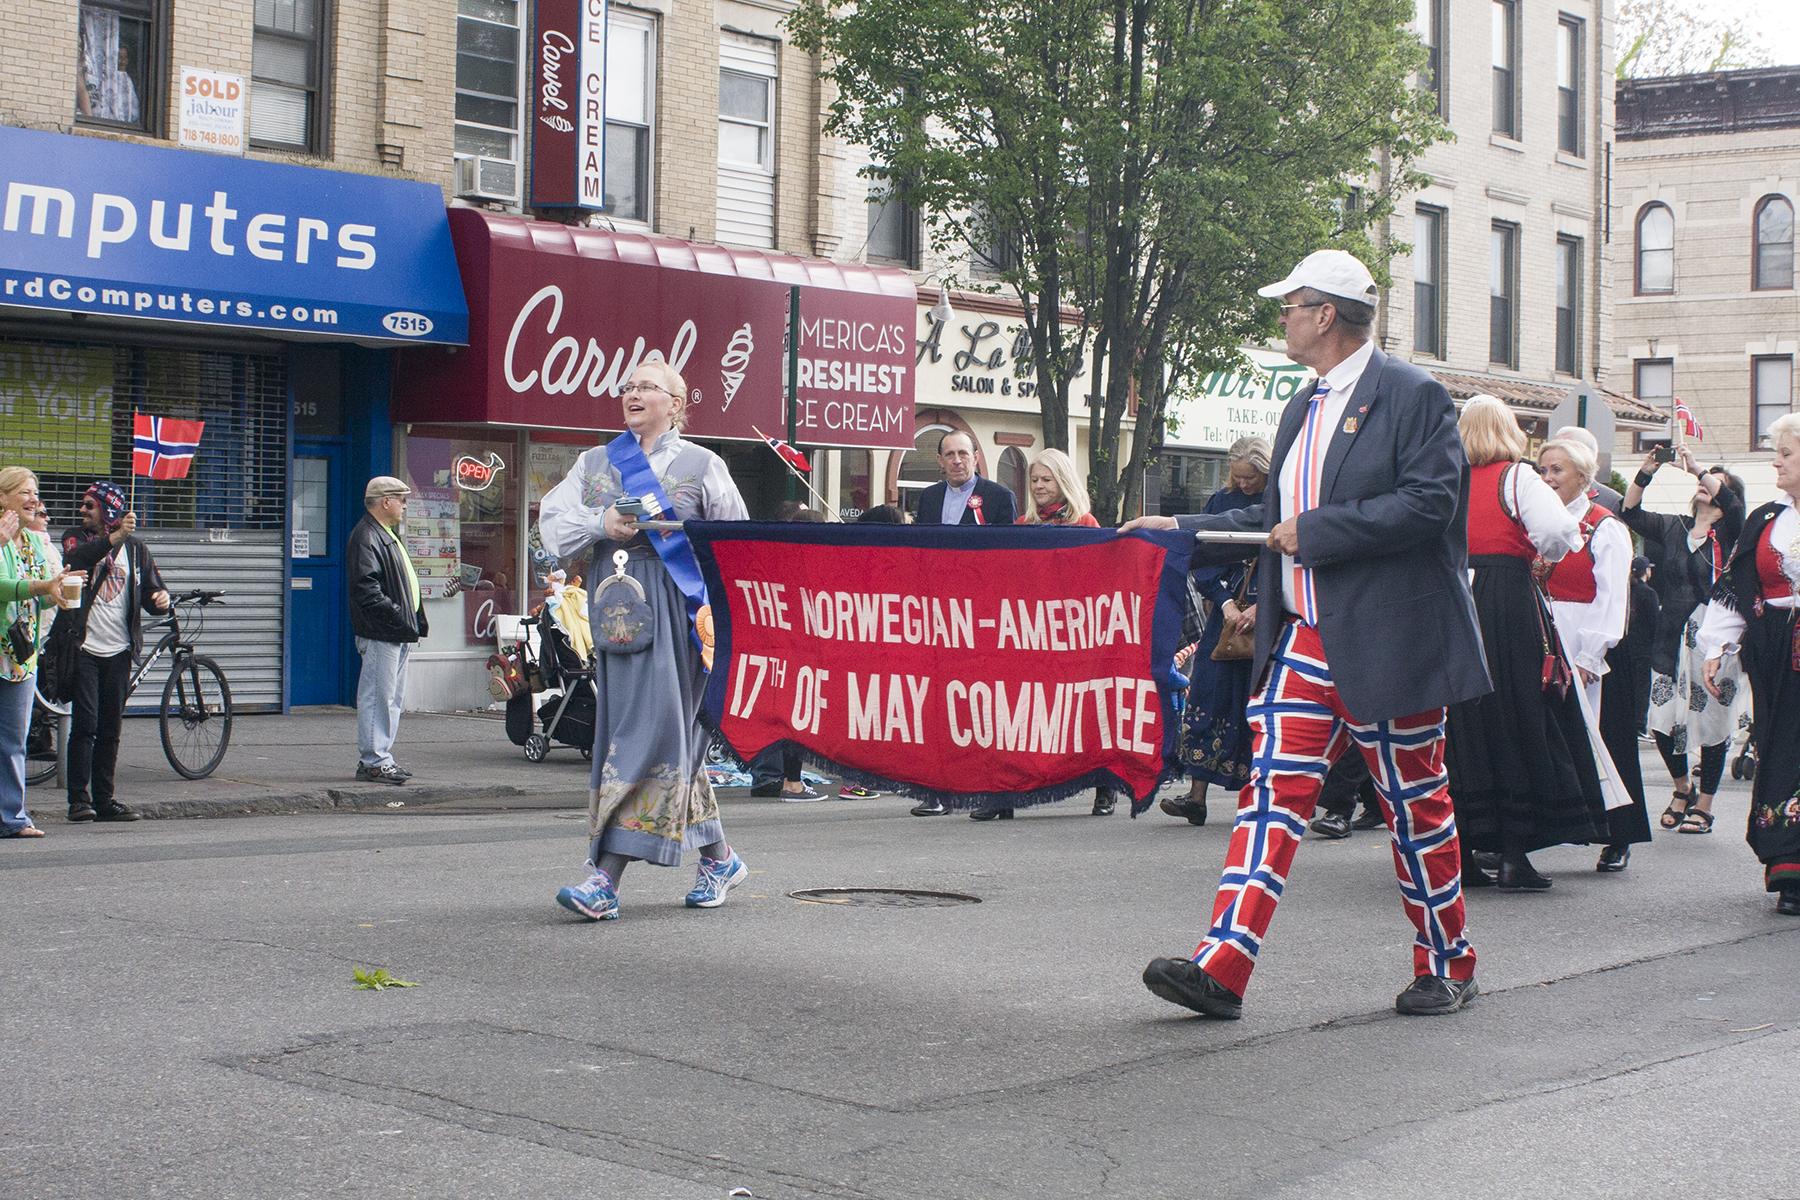 Leaders of The 17th of May Committee carry their banner through the parade. This group is responsible for planning and promoting the parade in Brooklyn each year.